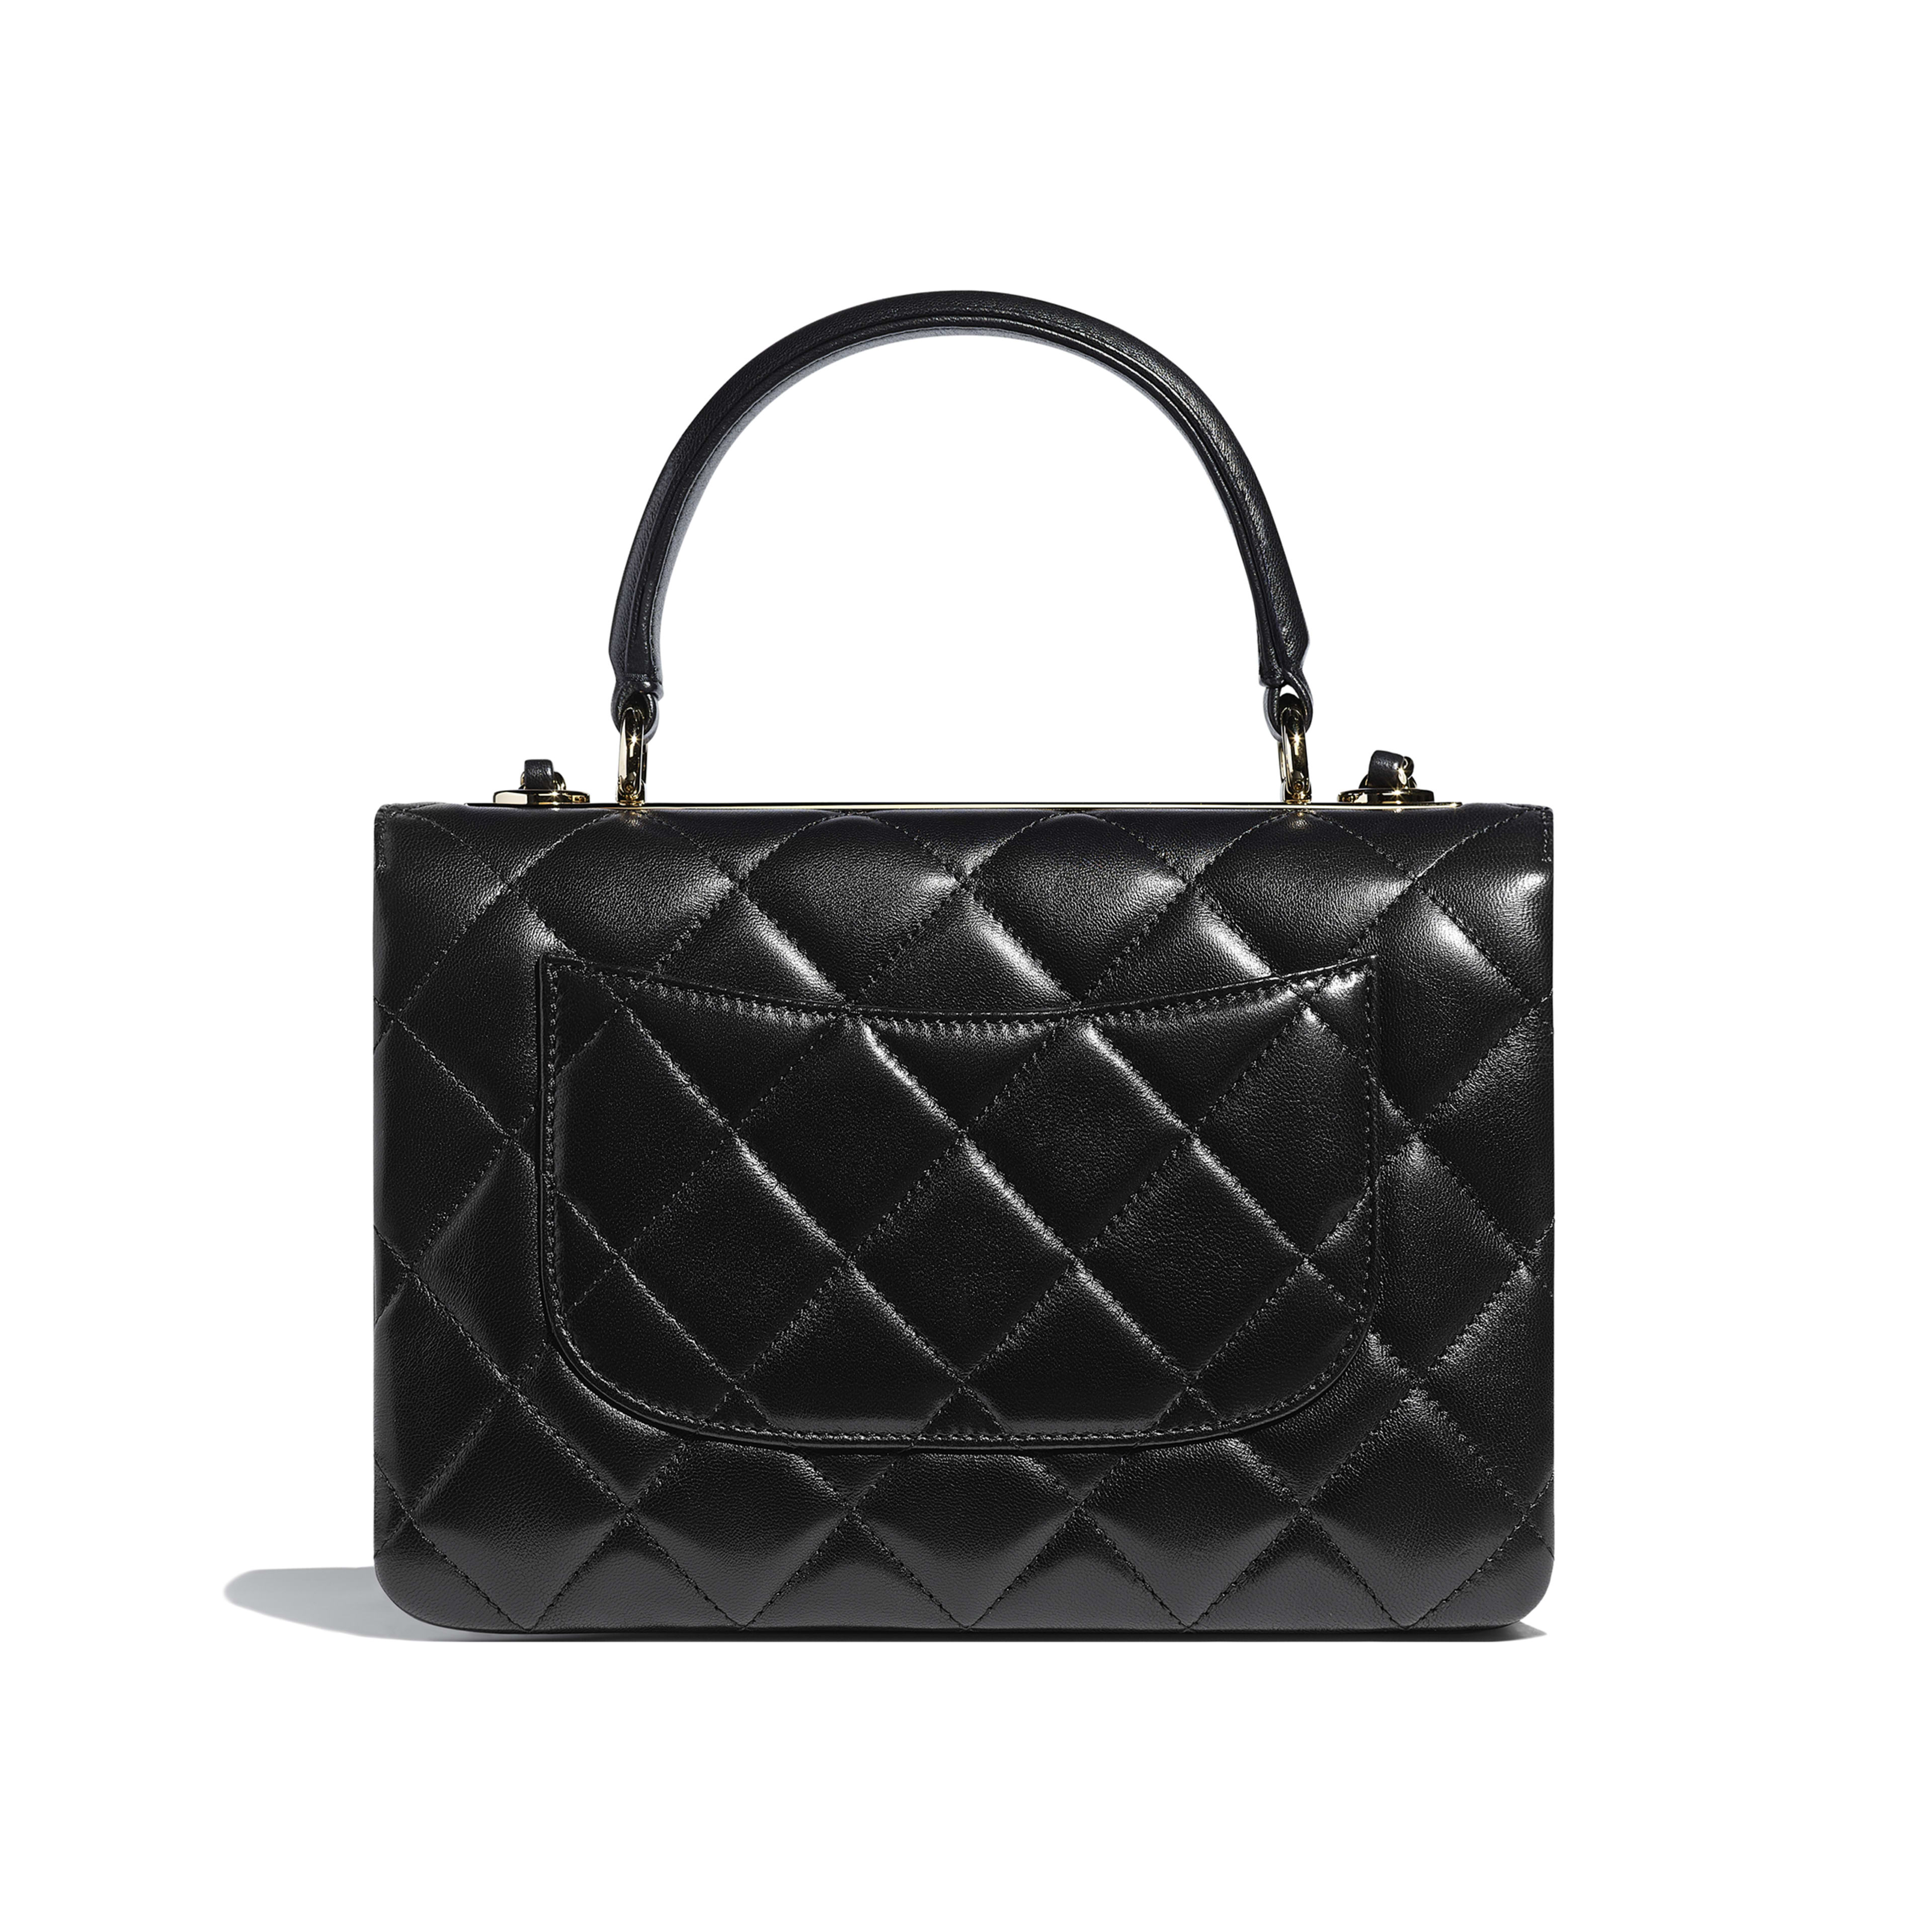 Small Flap Bag with Top Handle - Black - Lambskin & Gold-Tone Metal - Alternative view - see full sized version